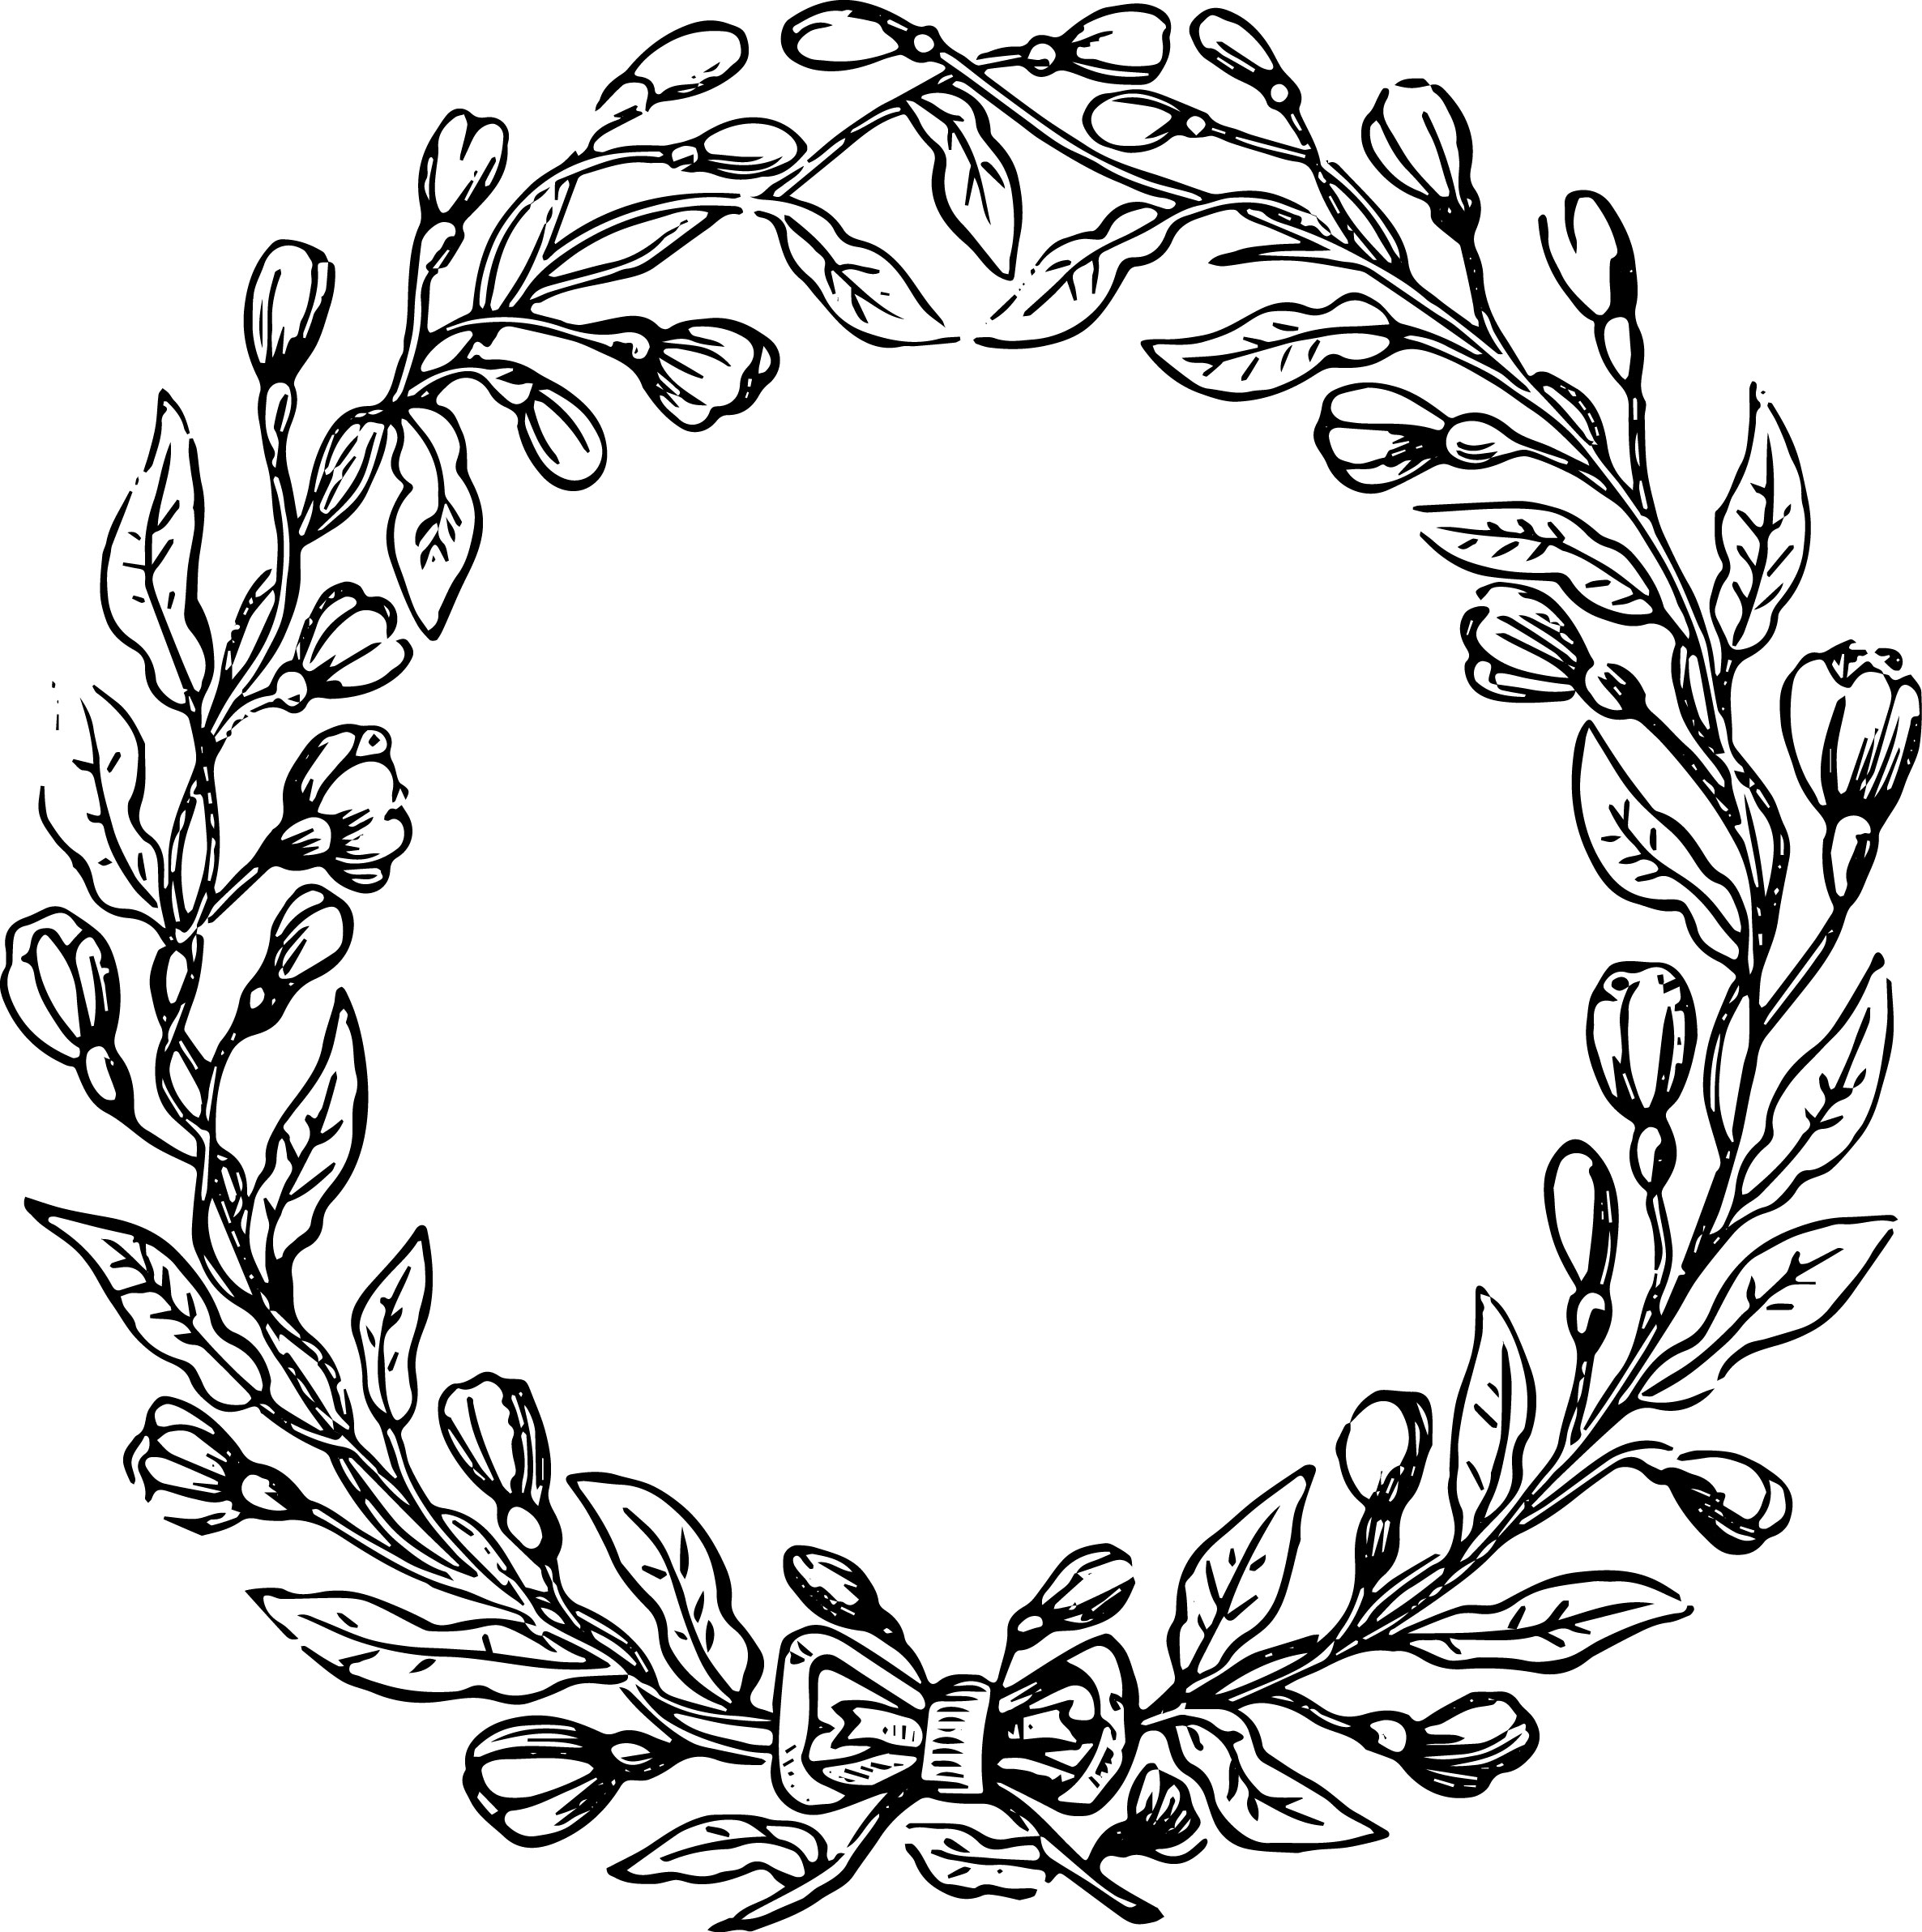 2372x2384 Free Vector File And Clip Art Image Vintage Floral Wreath Oh Image